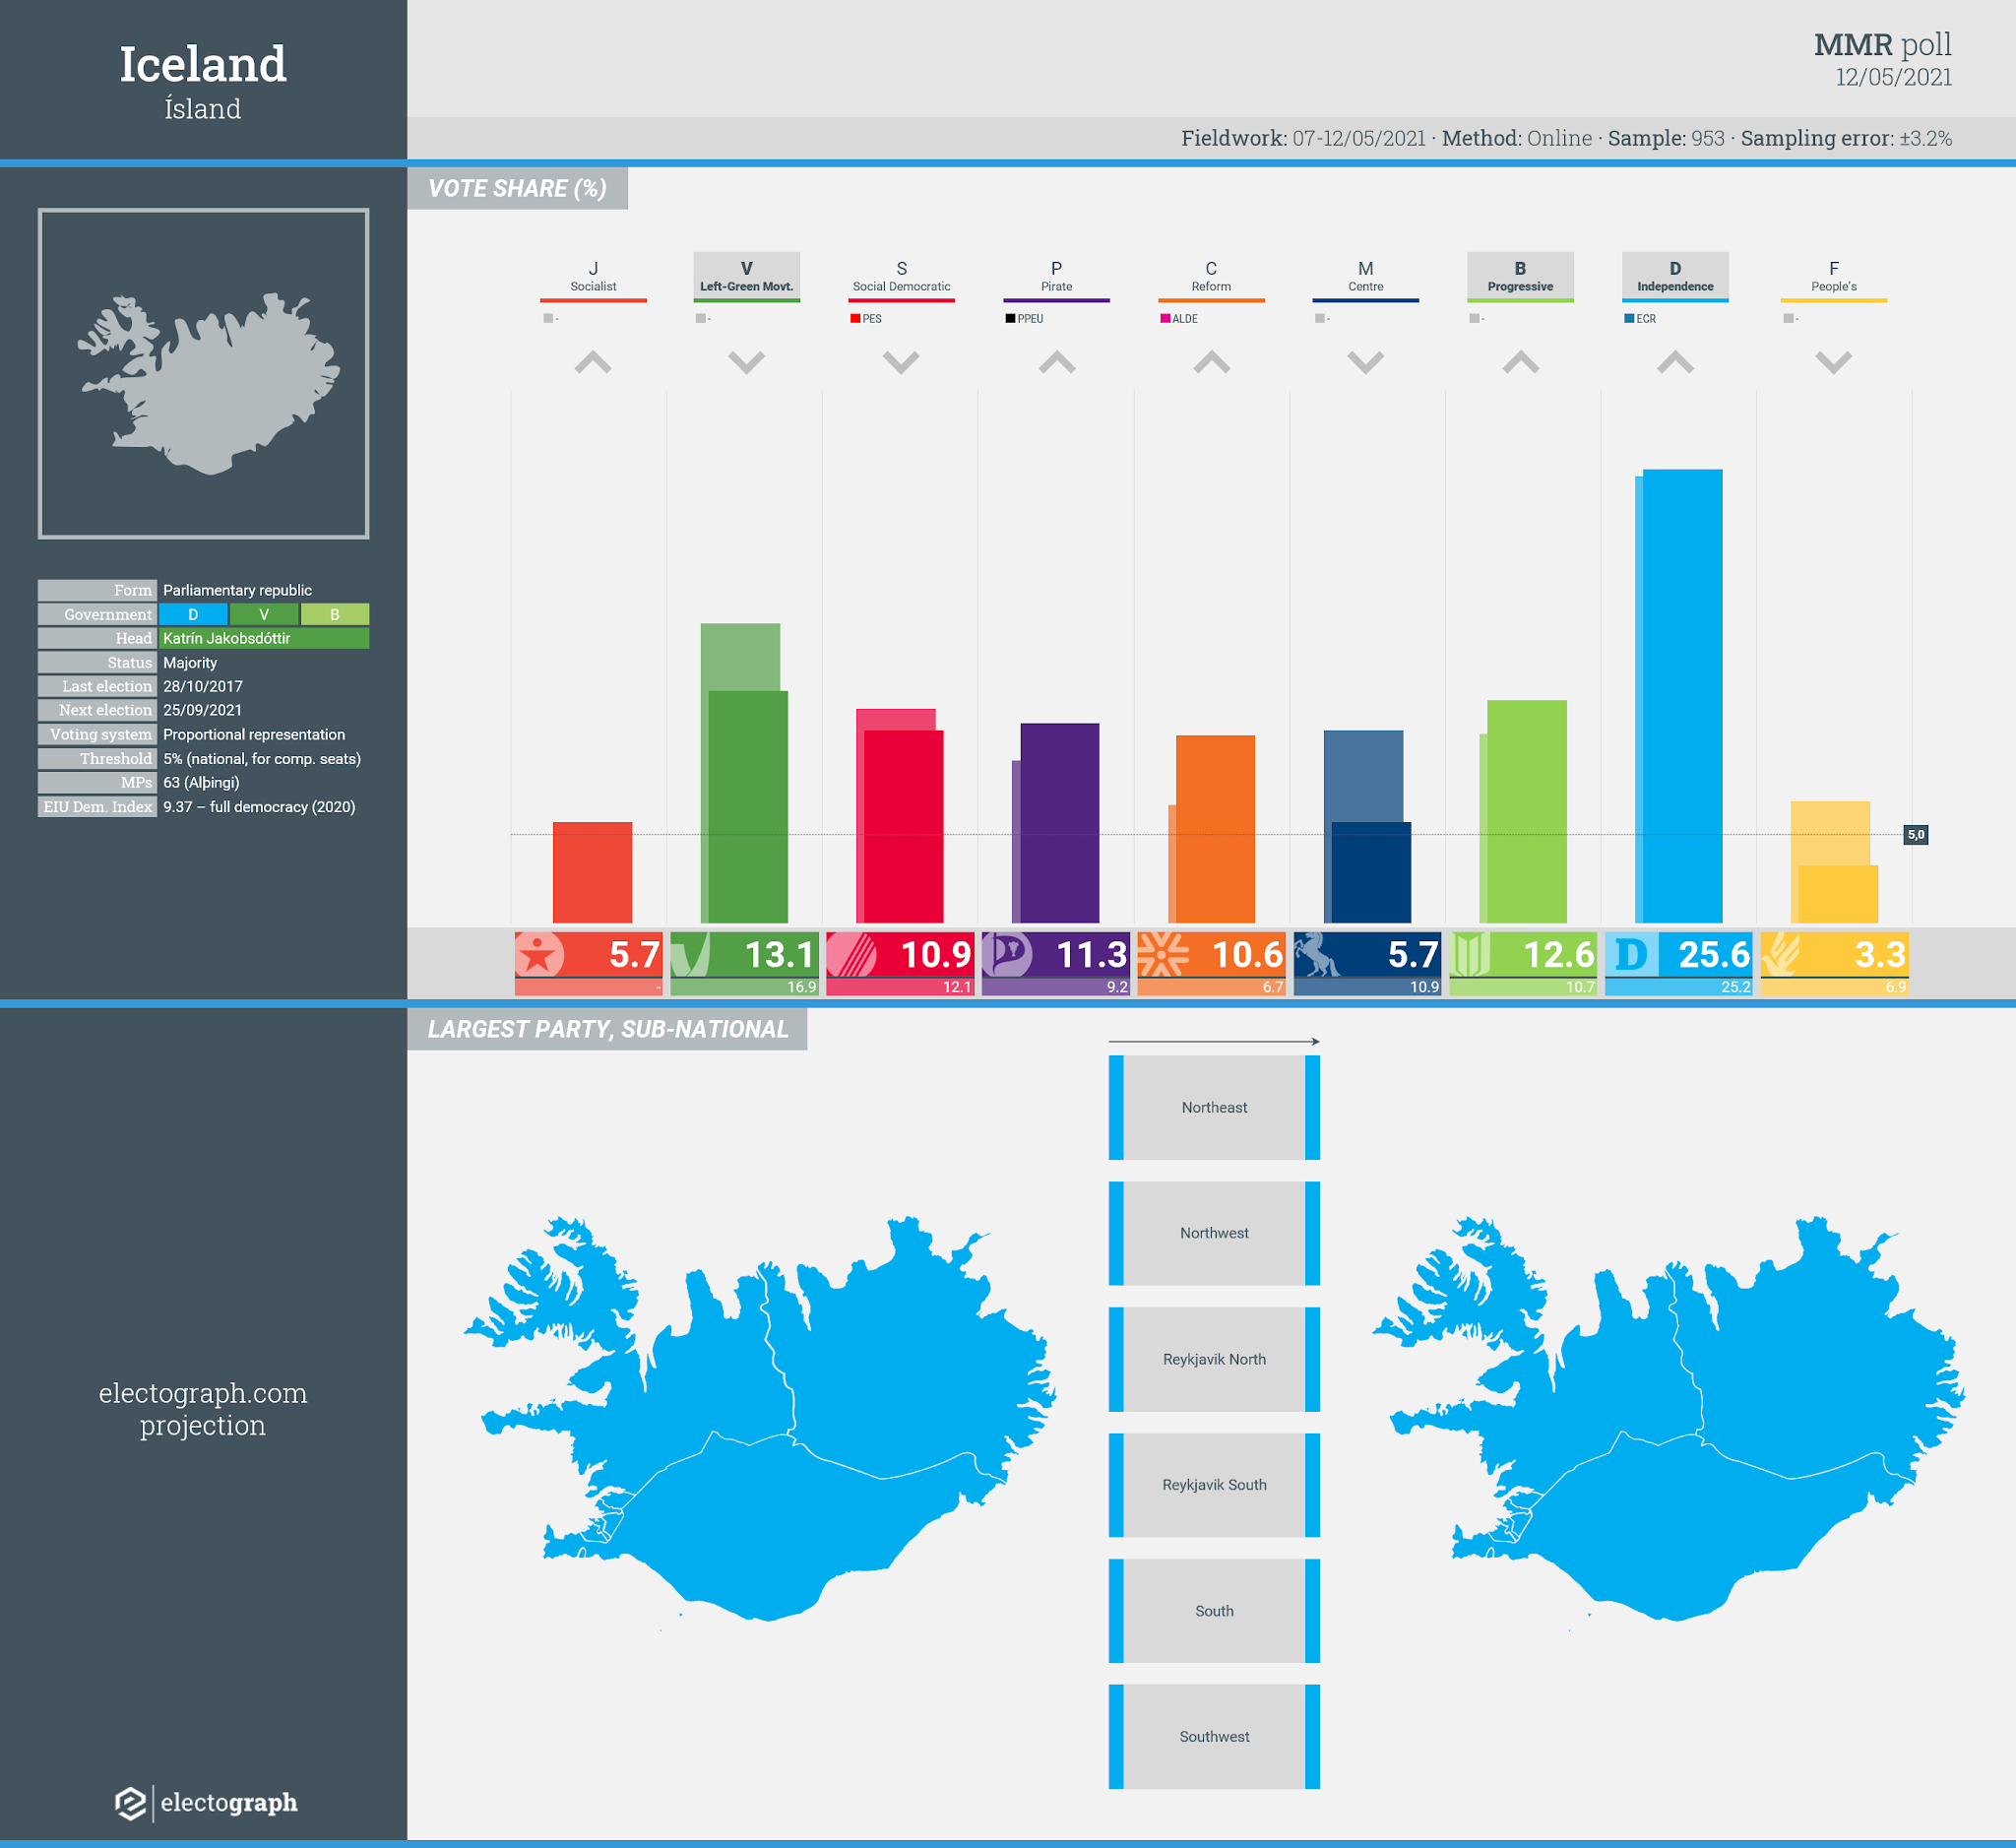 ICELAND: MMR poll chart, 12 May 2021